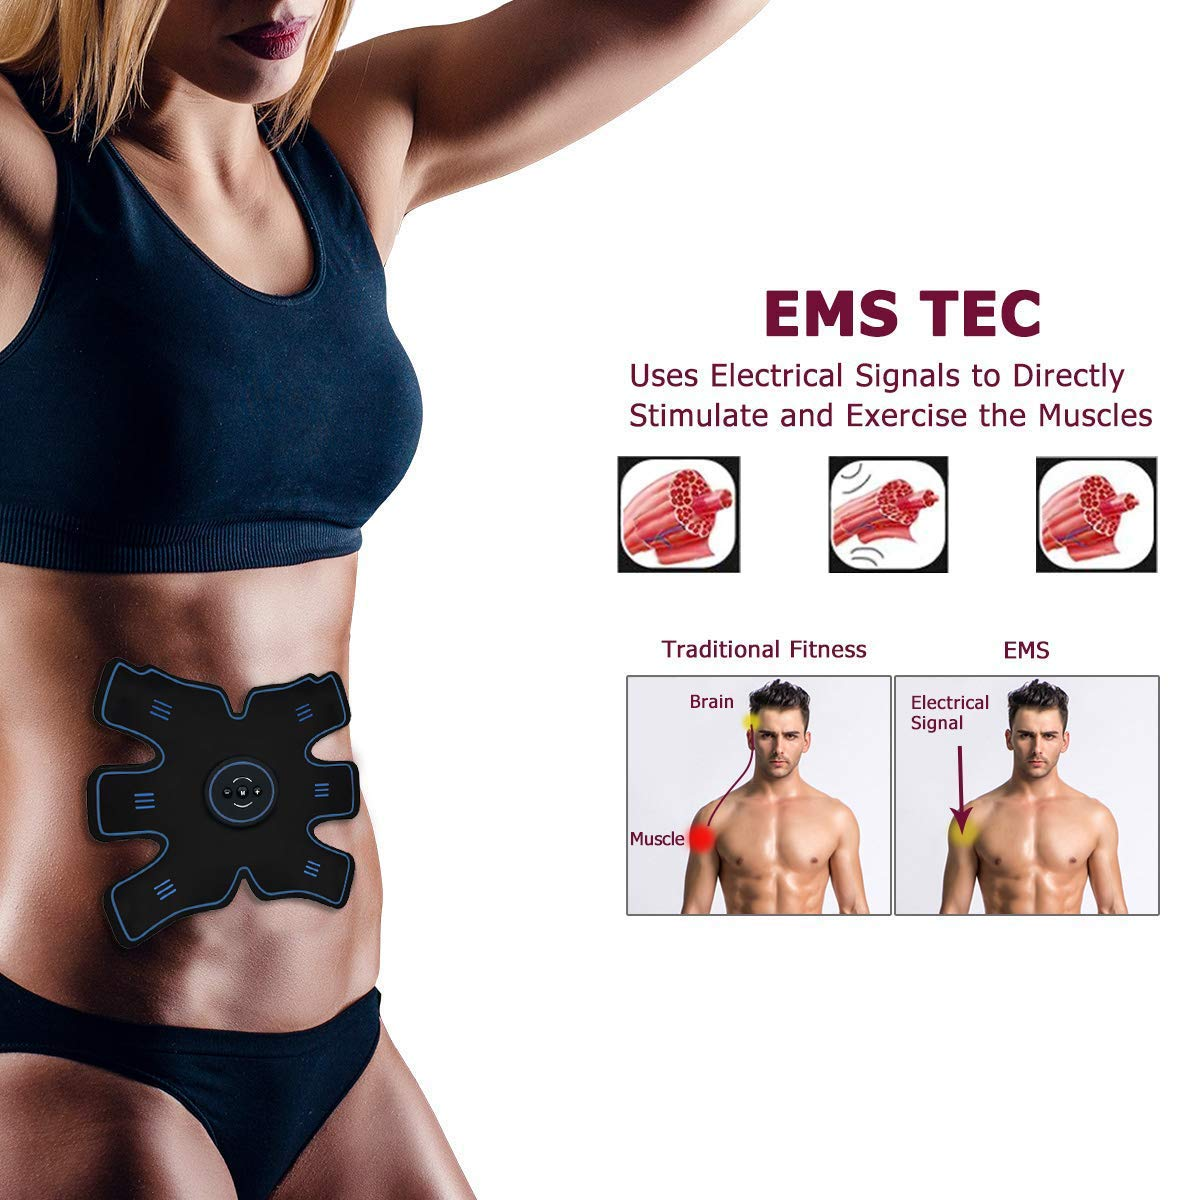 YUCEN ABS Stimulator Abs Stimulating Belt Muscle Toner Training Device for Muscles- Wireless Portable to-Go Gym Device- Muscle Sculpting at Home- Fitness Equipment for at-Home Workouts YUCHEEN